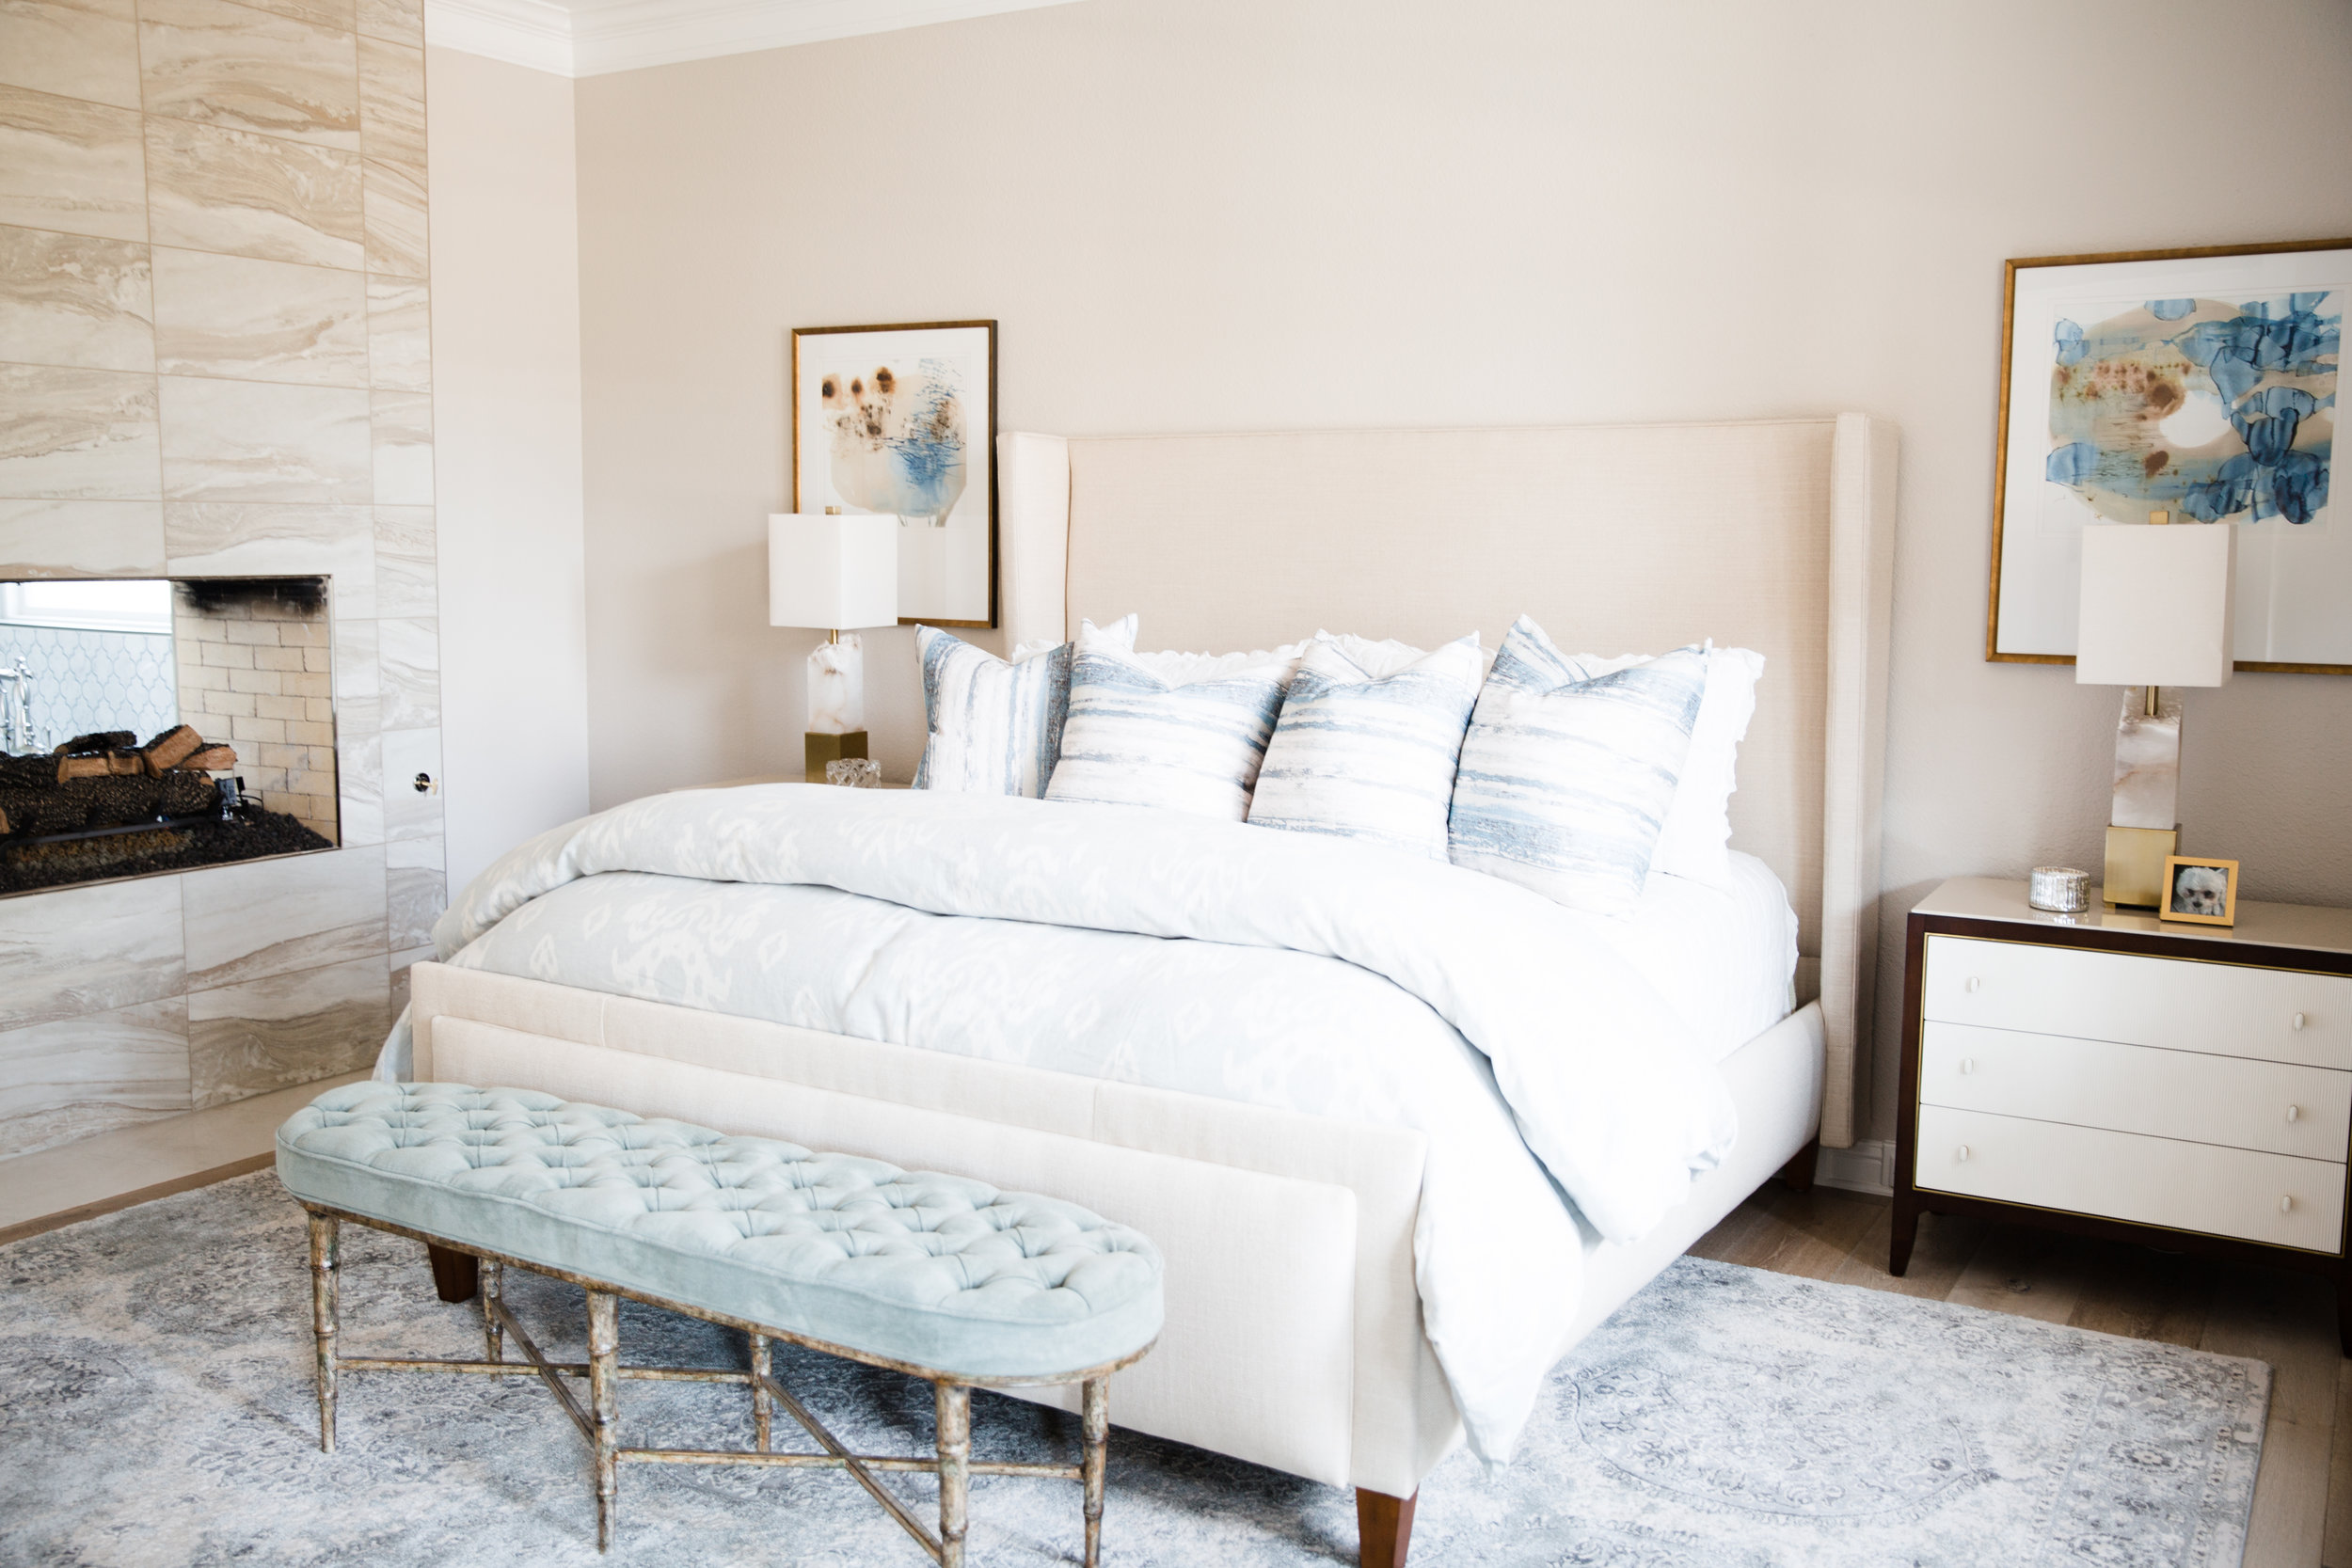 The master bedroom with soft and sumptuous bedding and a tall headboard.